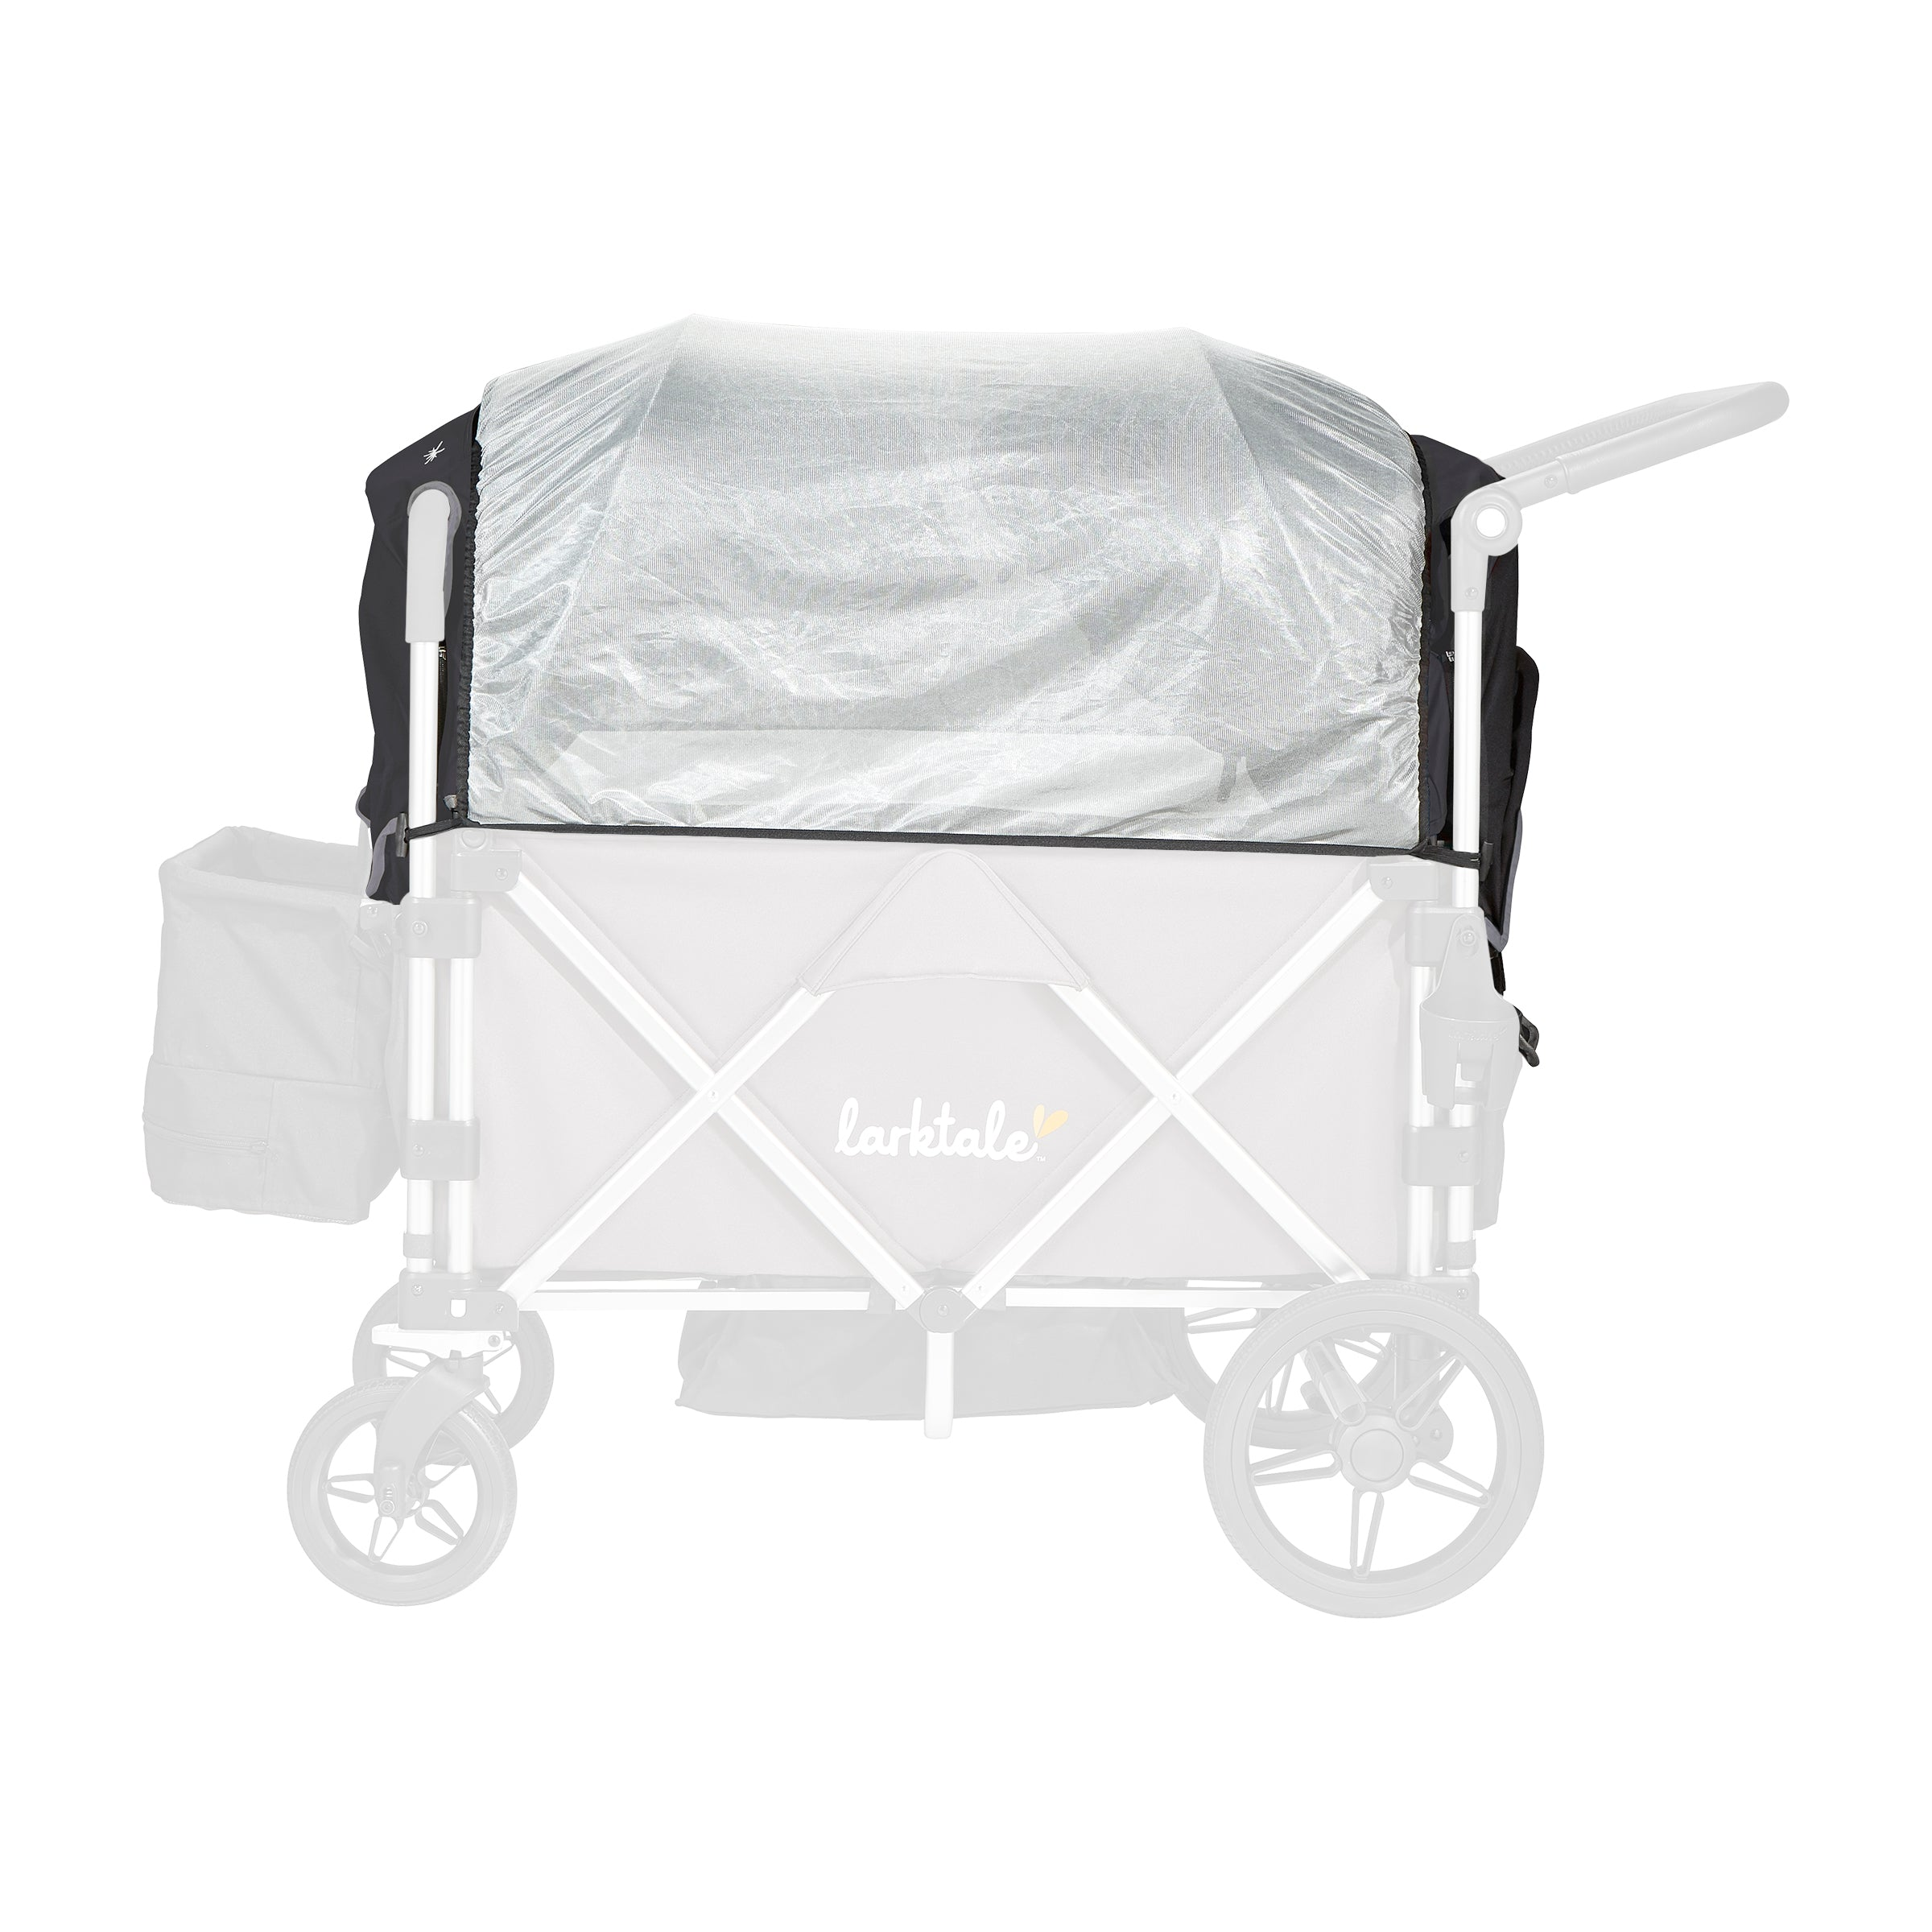 Caravan stroller/wagon sun canopy set - built-in bug cover